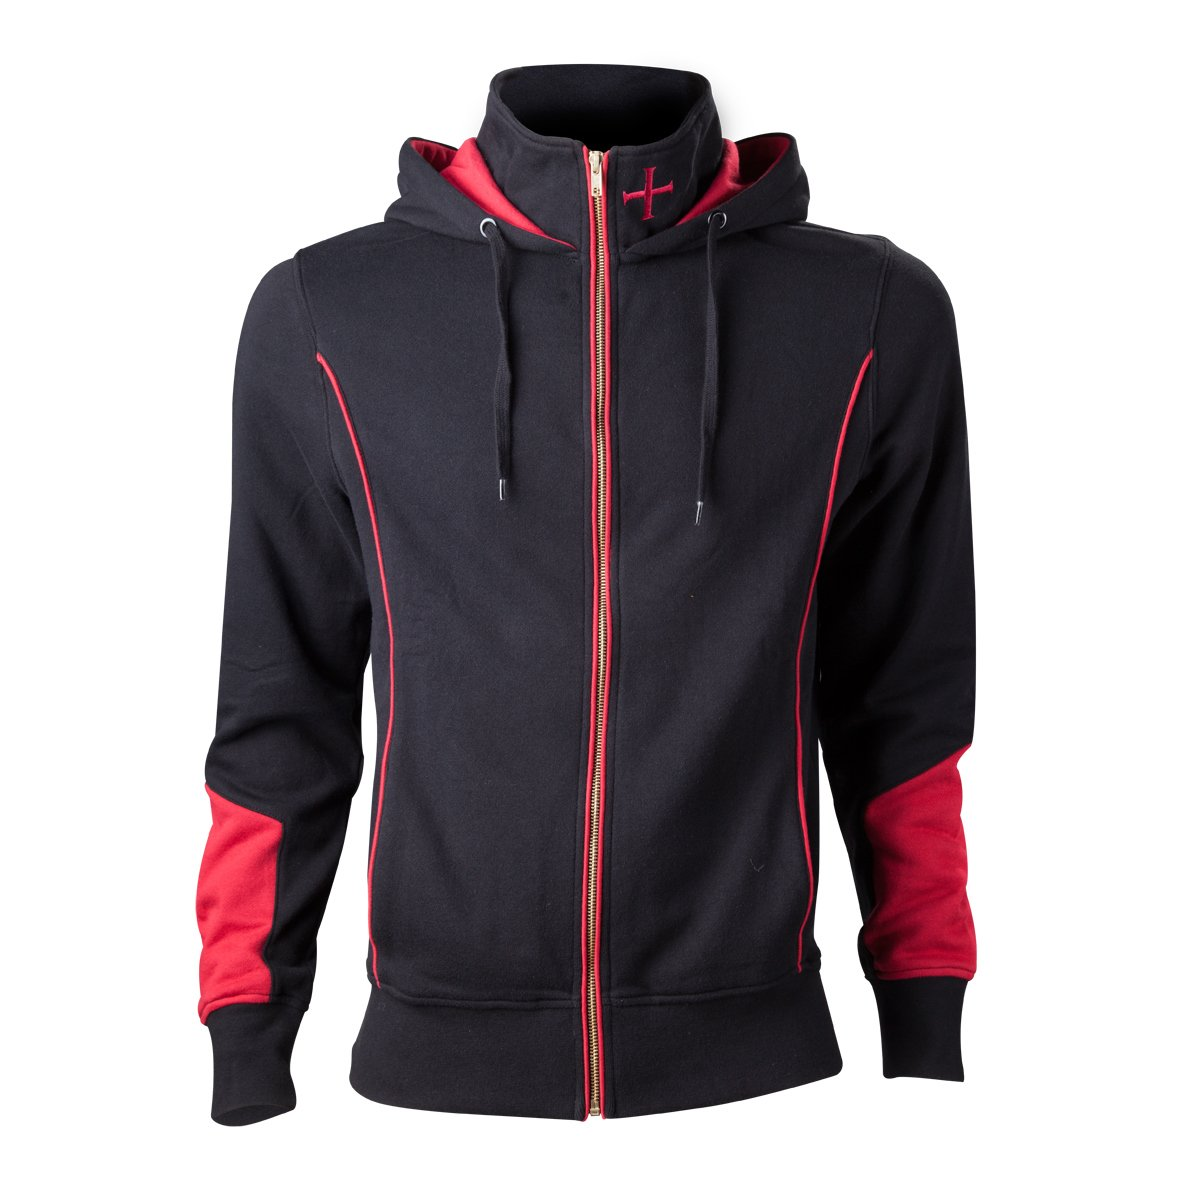 Assassin's Creed Rogue Sudadera Capucha con Cremallera Negro/Rojo